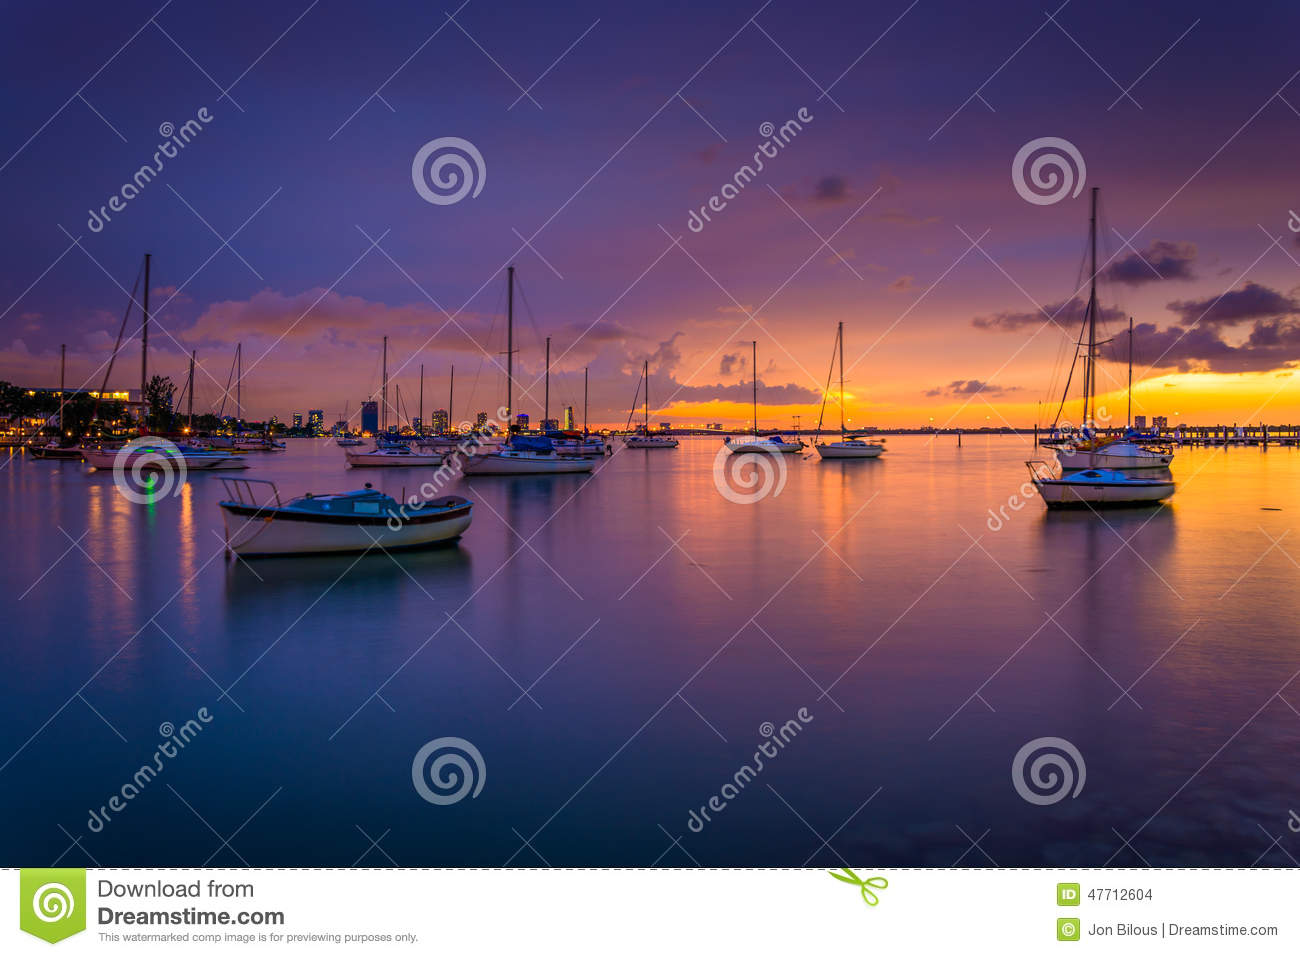 Boats in Biscayne Bay at sunset, seen from Miami Beach, Florida.